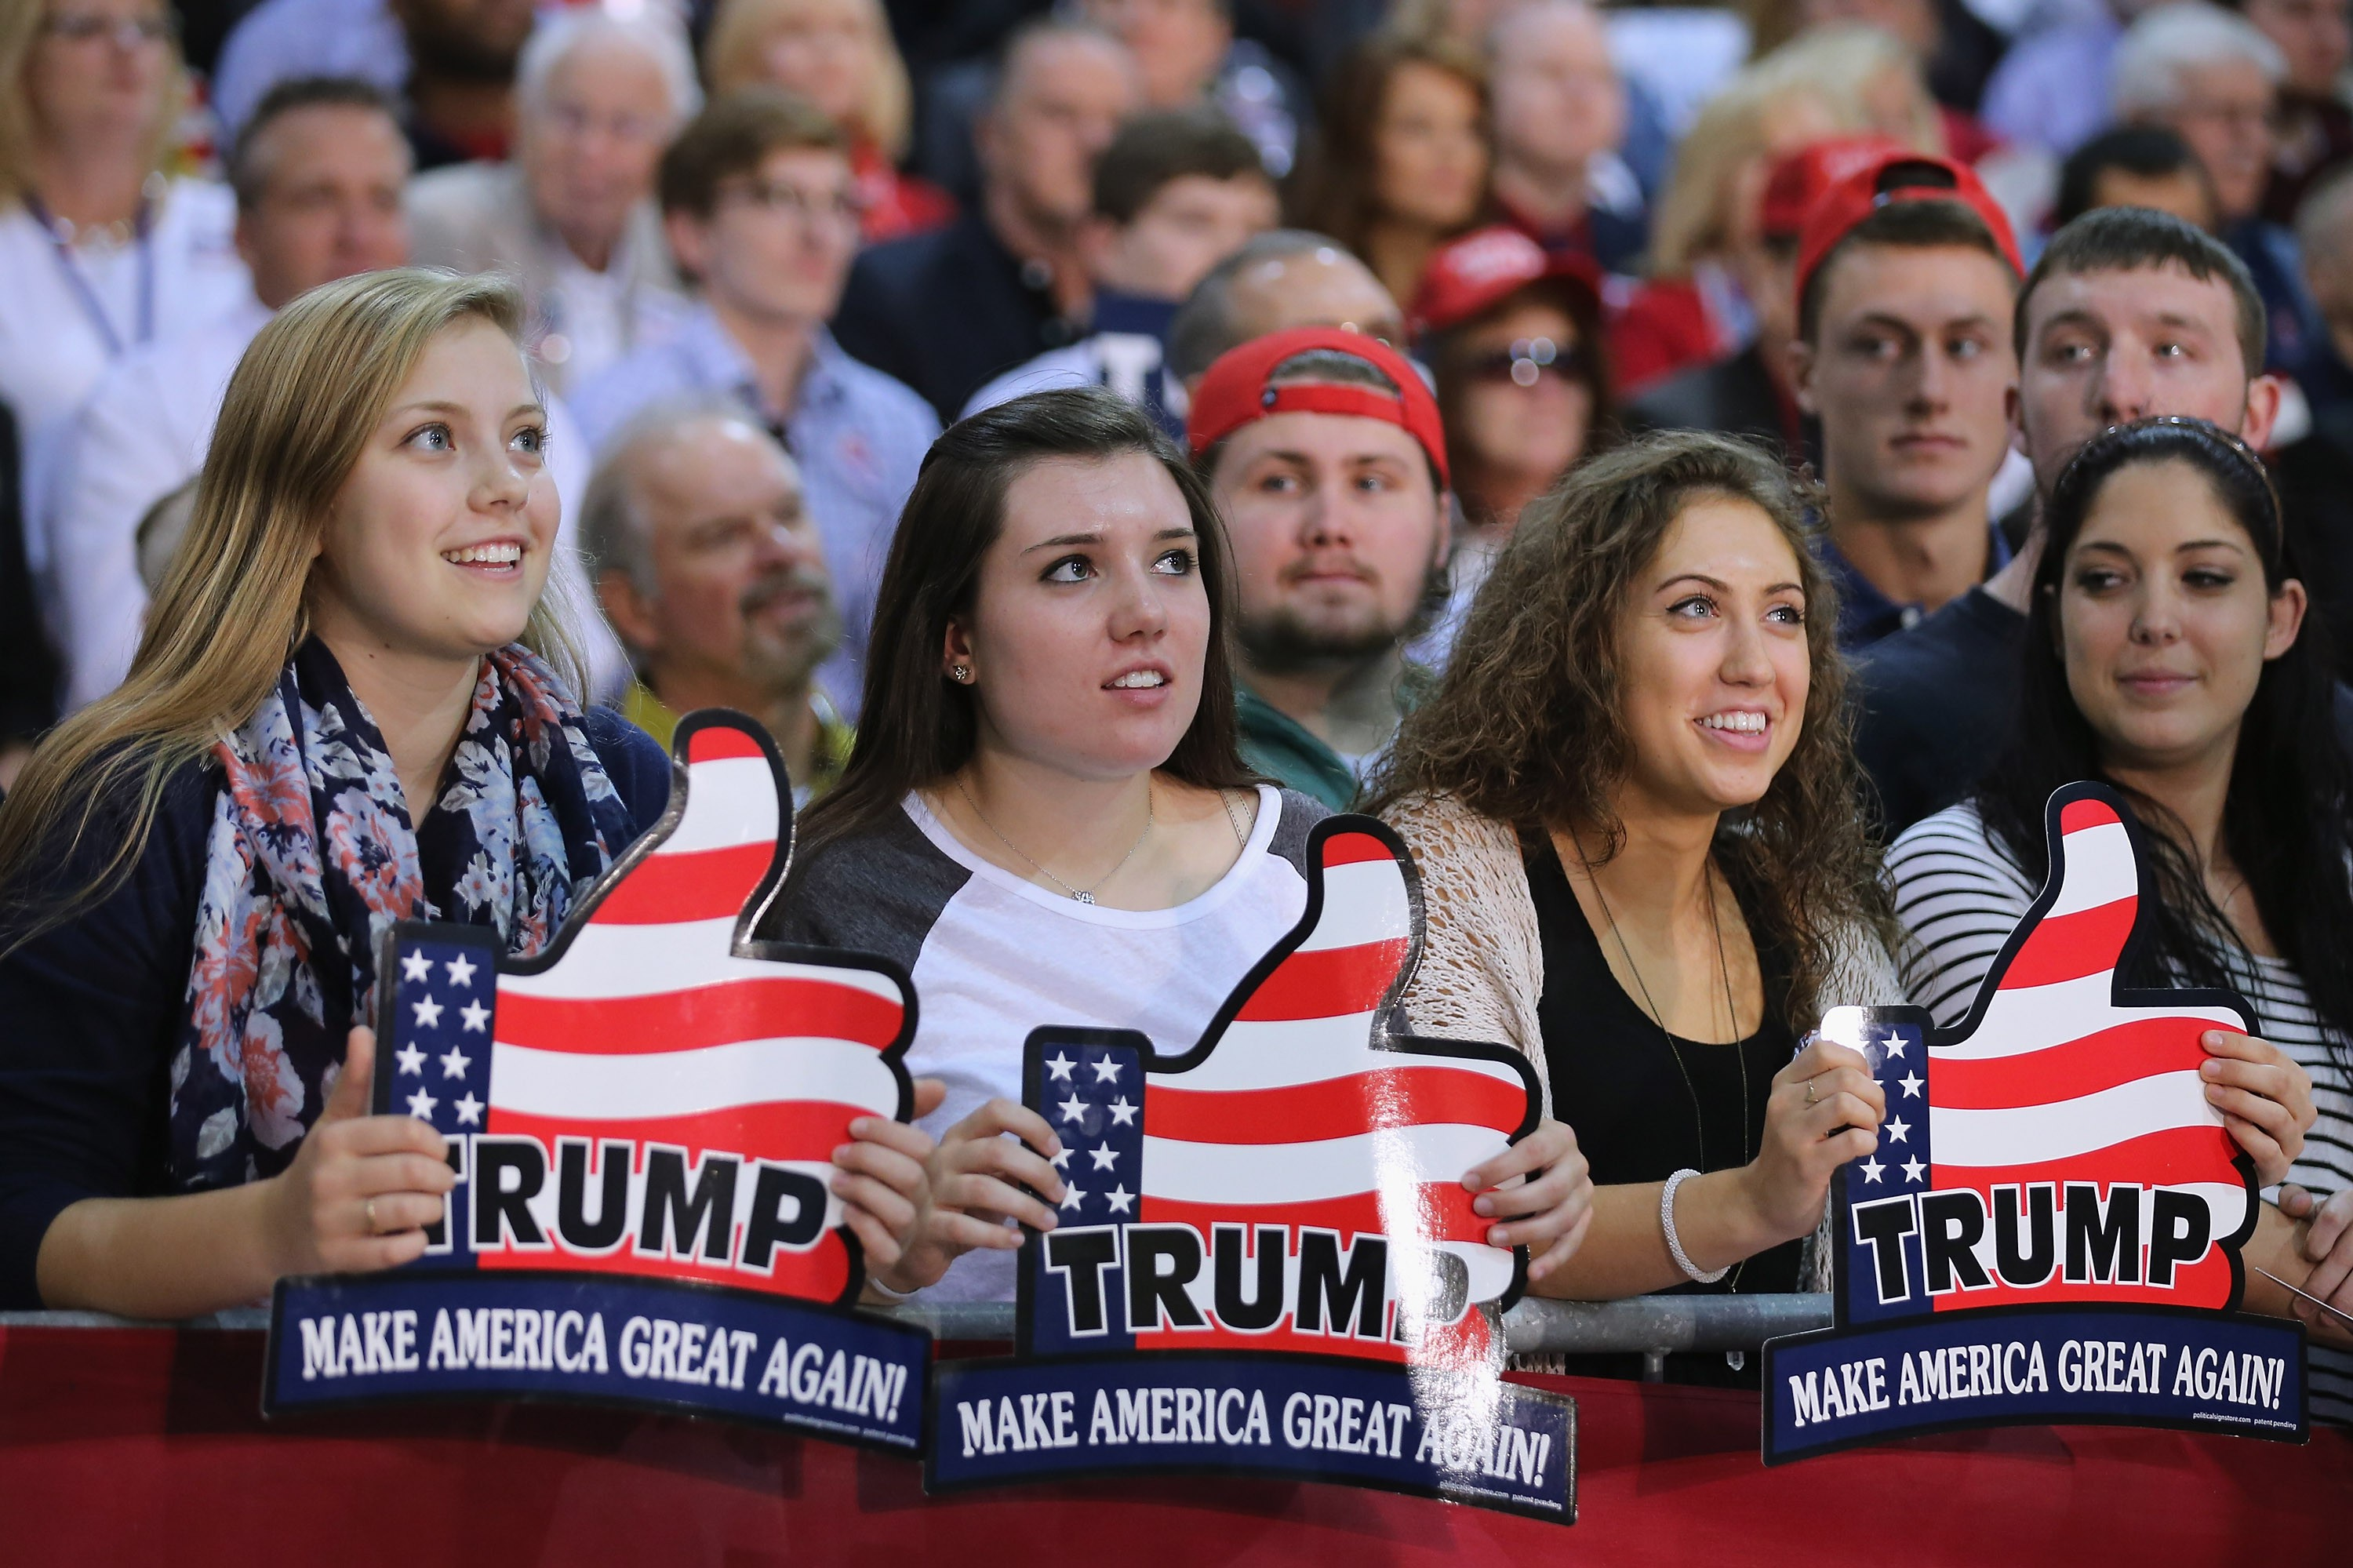 An image of 4 young women trump supporters the look to be in their 20's each is smiling and looking up at President Trump on the stage, each woman is holding a sign in the shape of a thumbs up hand with a U.S. flag background and the signs read